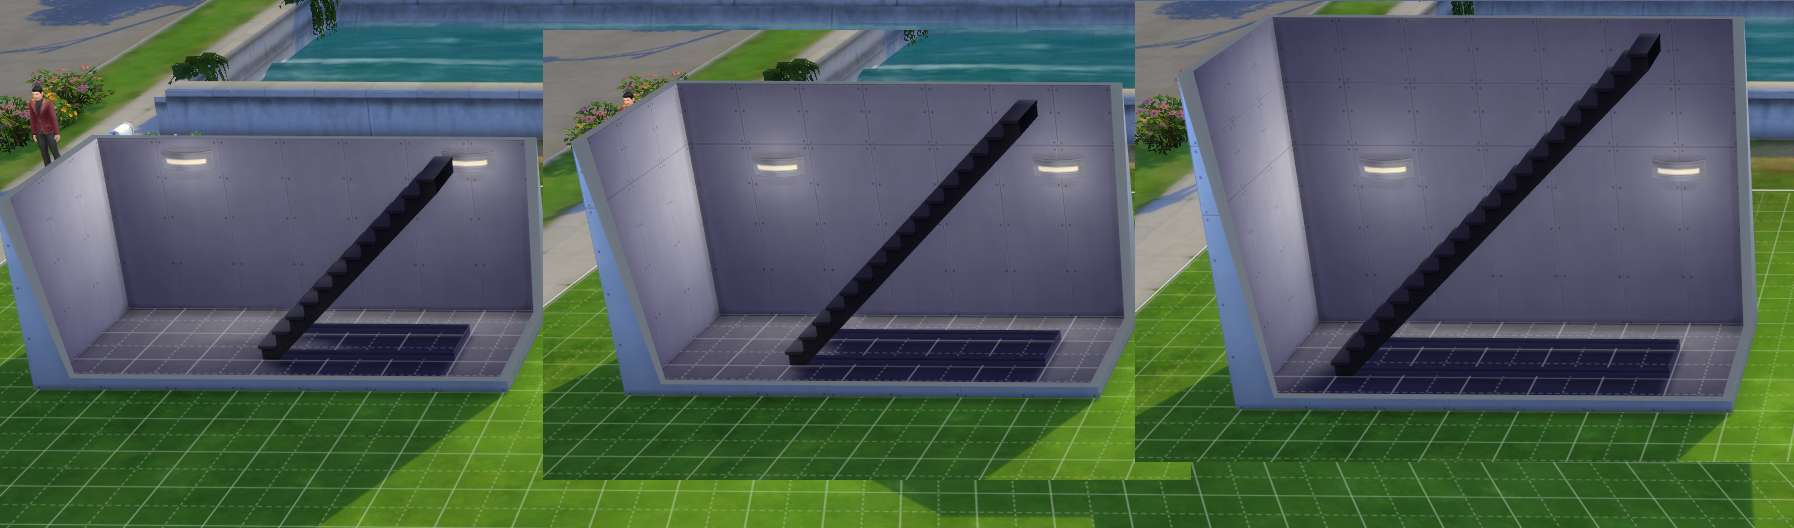 Hiding stair under the balcony - Sims 4 Building How To S Higher Walls Require More Space For The Stairs